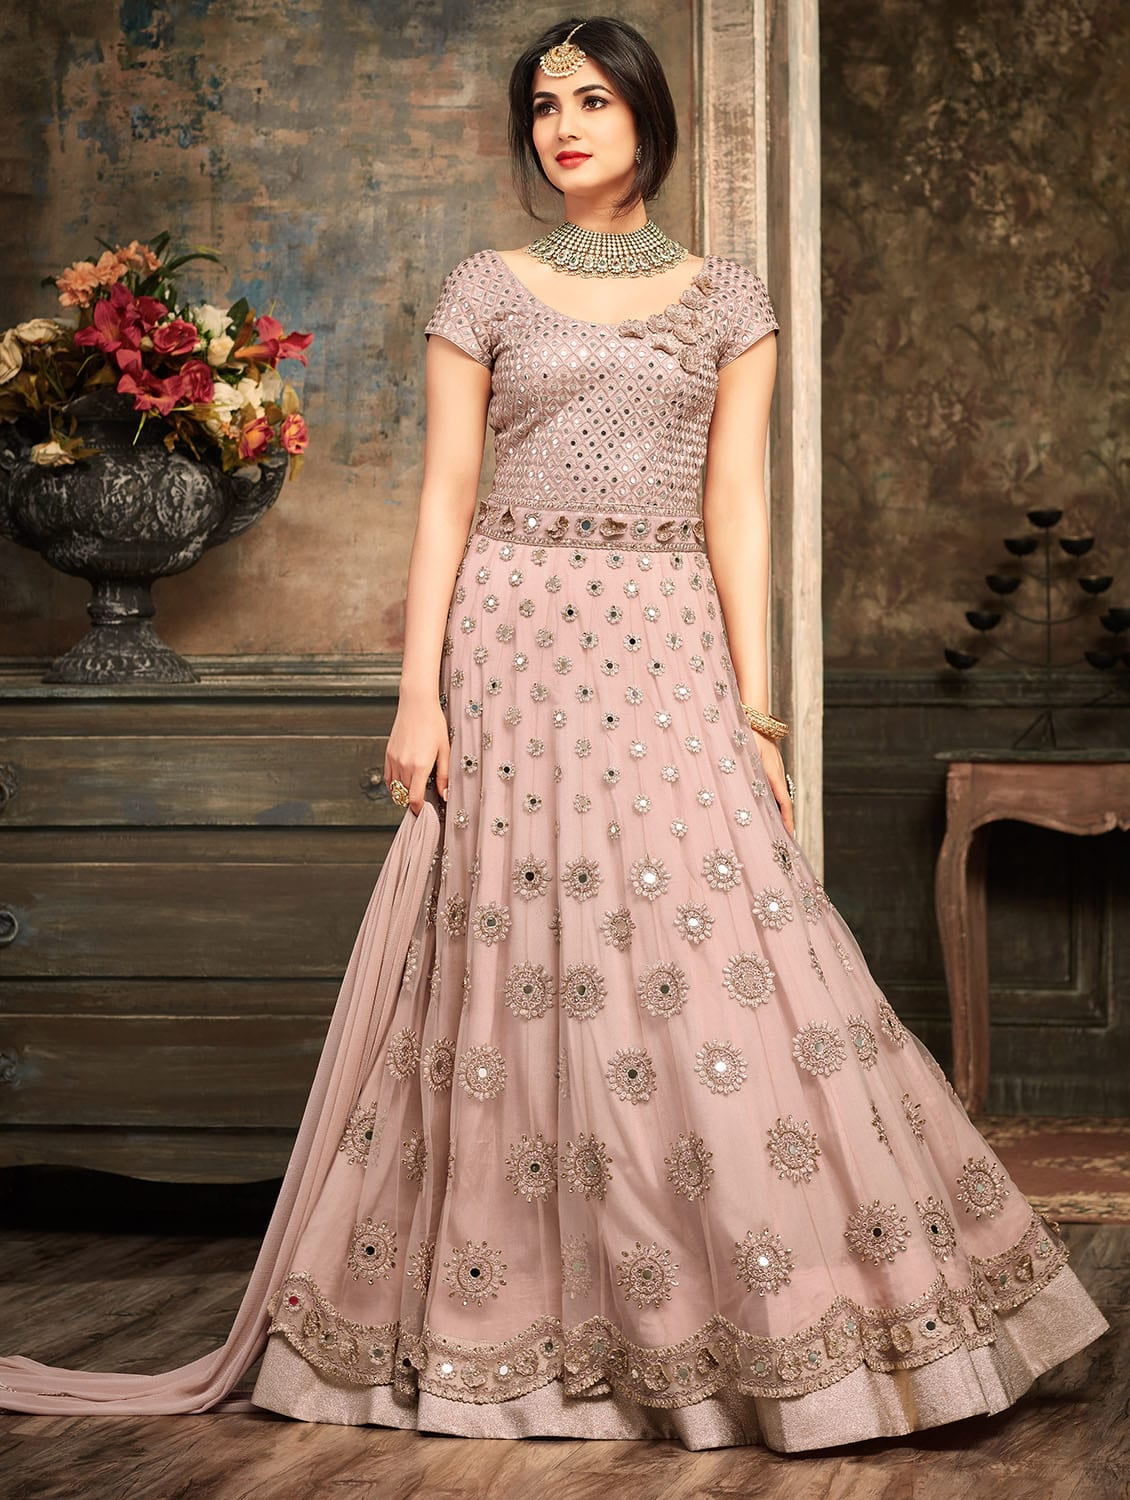 12 Best Indian Online Stores For Complete Wedding Shopping